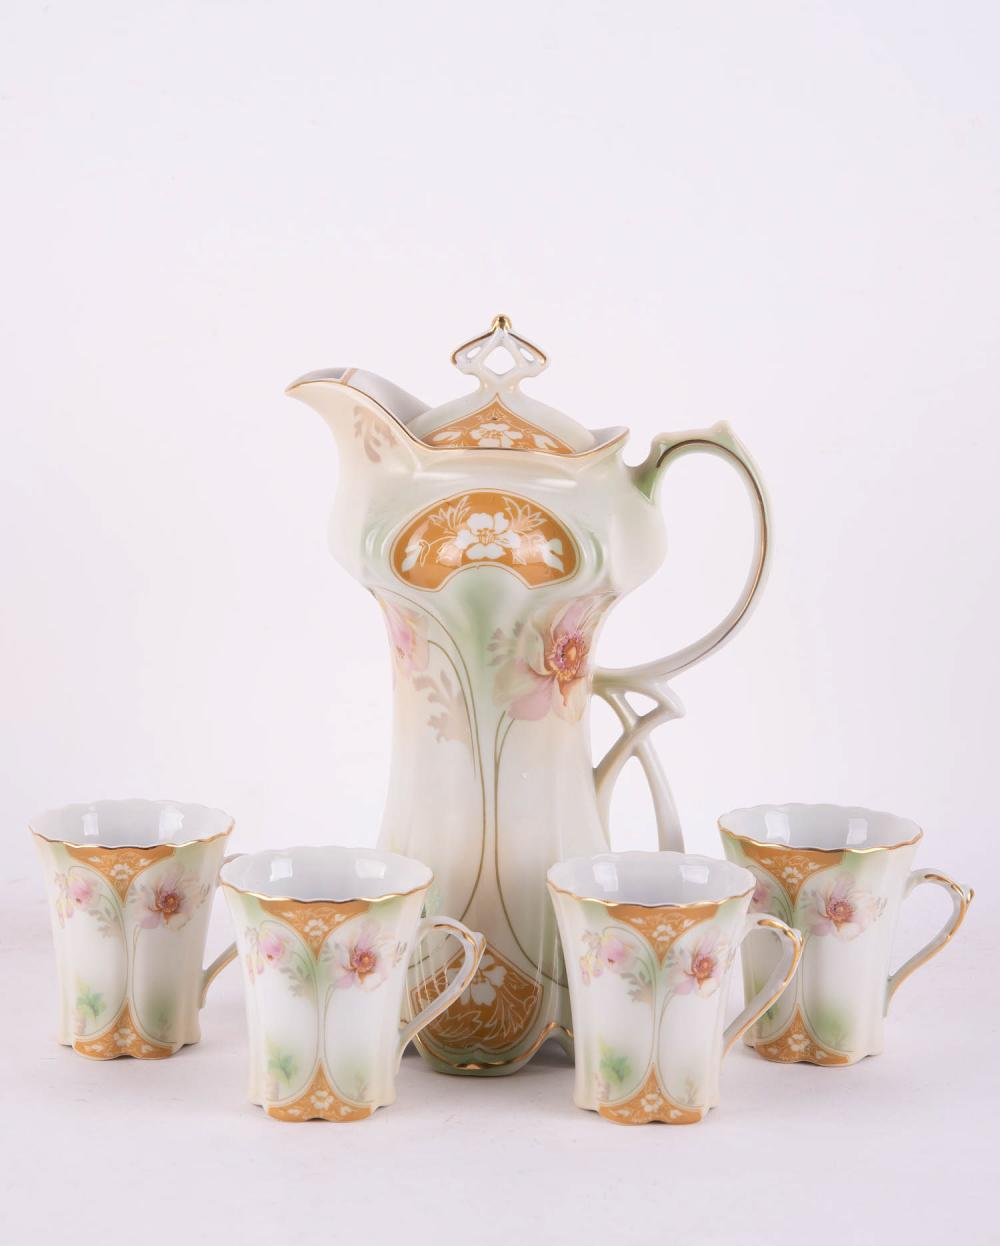 R S Prussia Porcelain Teapot And Cups